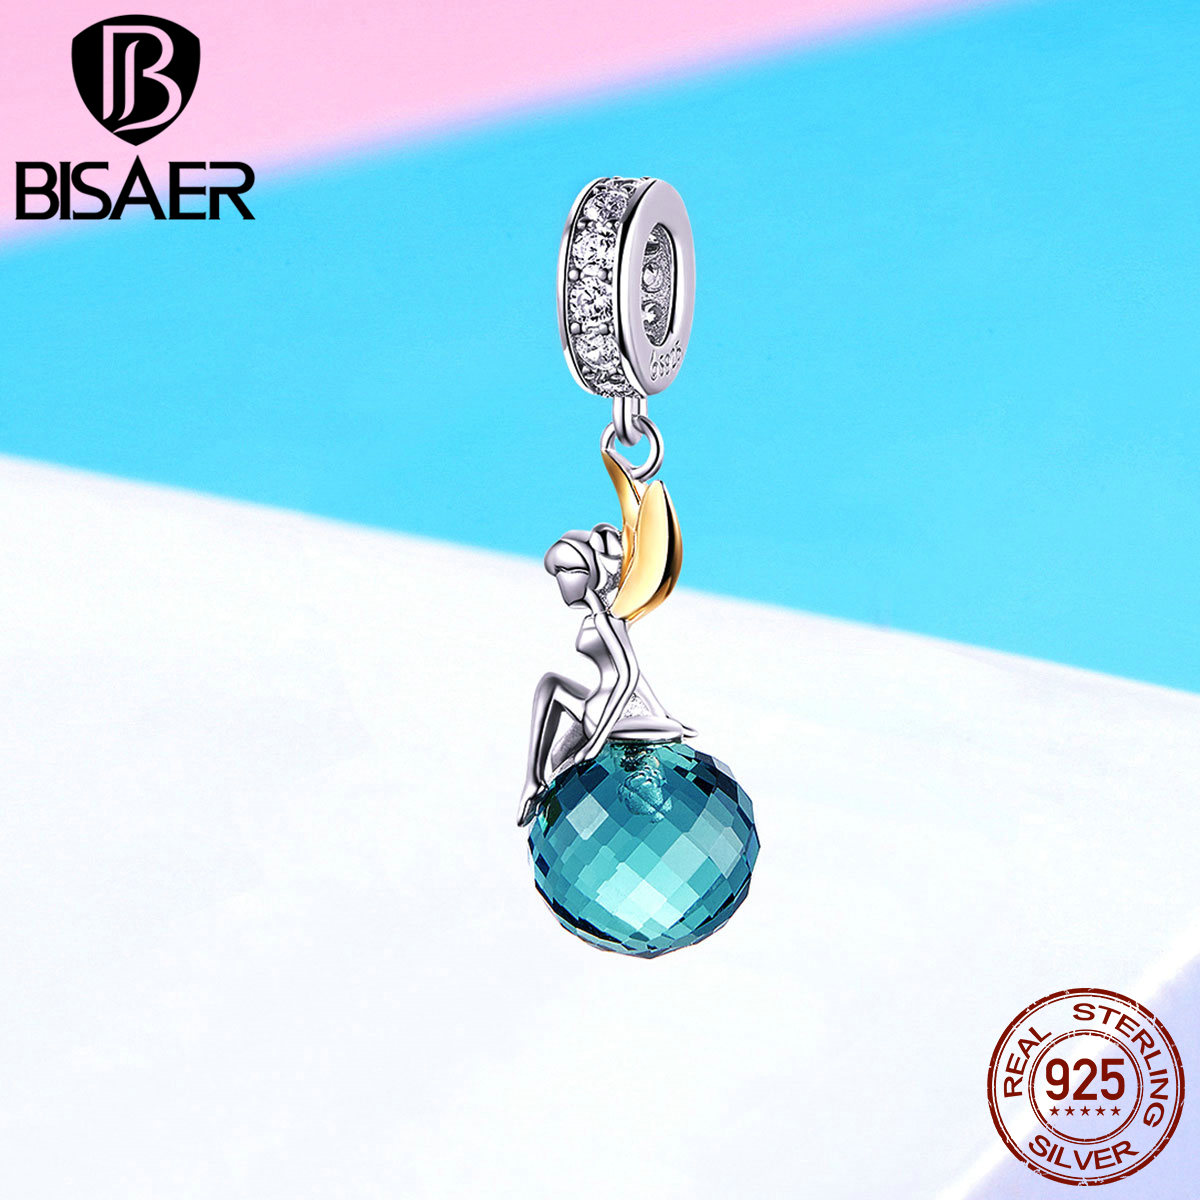 BISAER Authentic 925 Sterling Silver Blue Crystal Mysteriou Elf Planet Beads Charms fit Bracelet Silver Jewelry Making EFC056|Beads| |  - title=